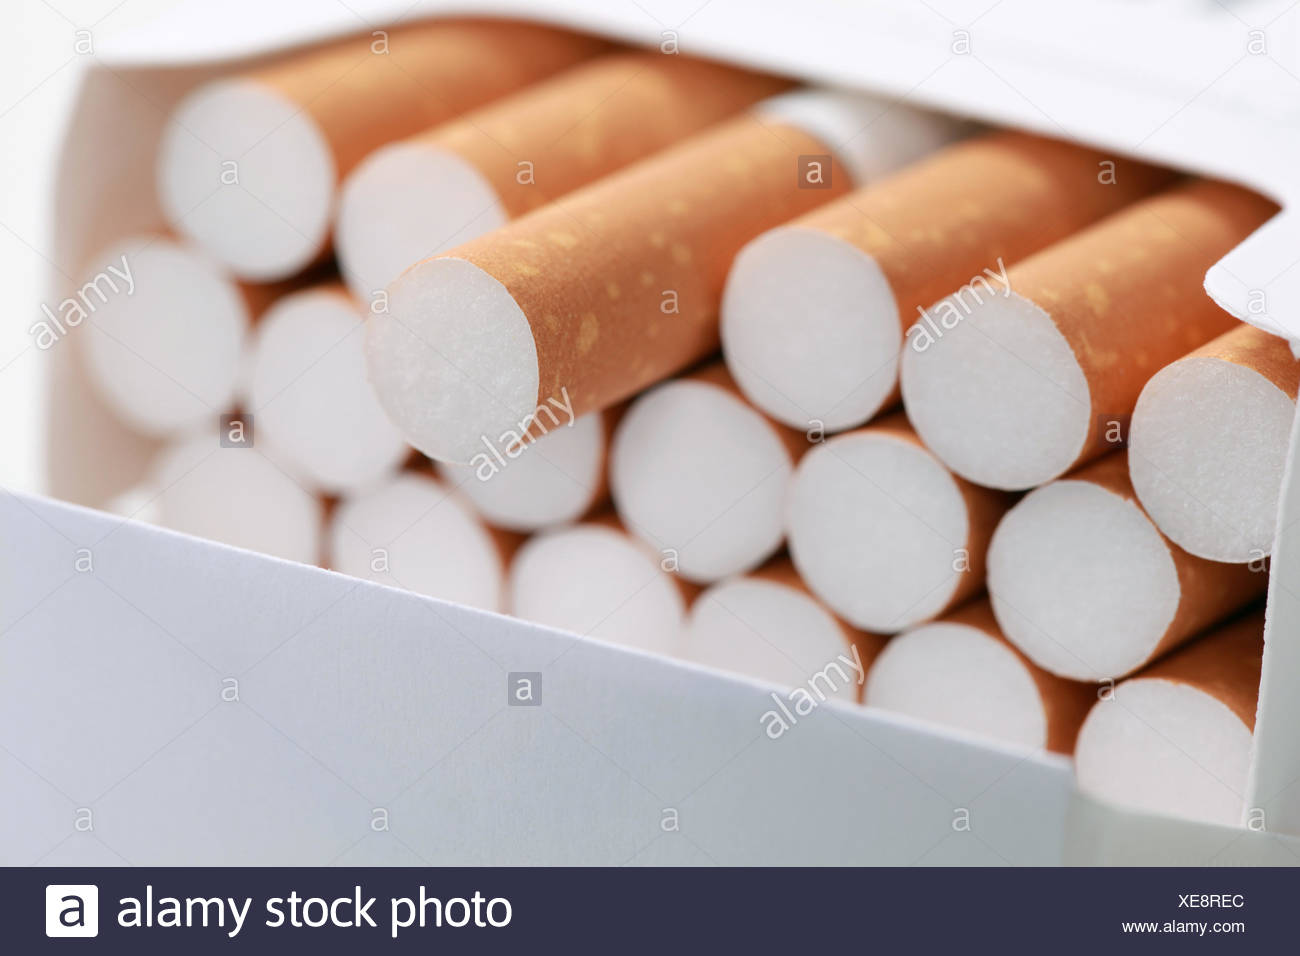 Price of pack of cigarettes Marlboro in Maryland